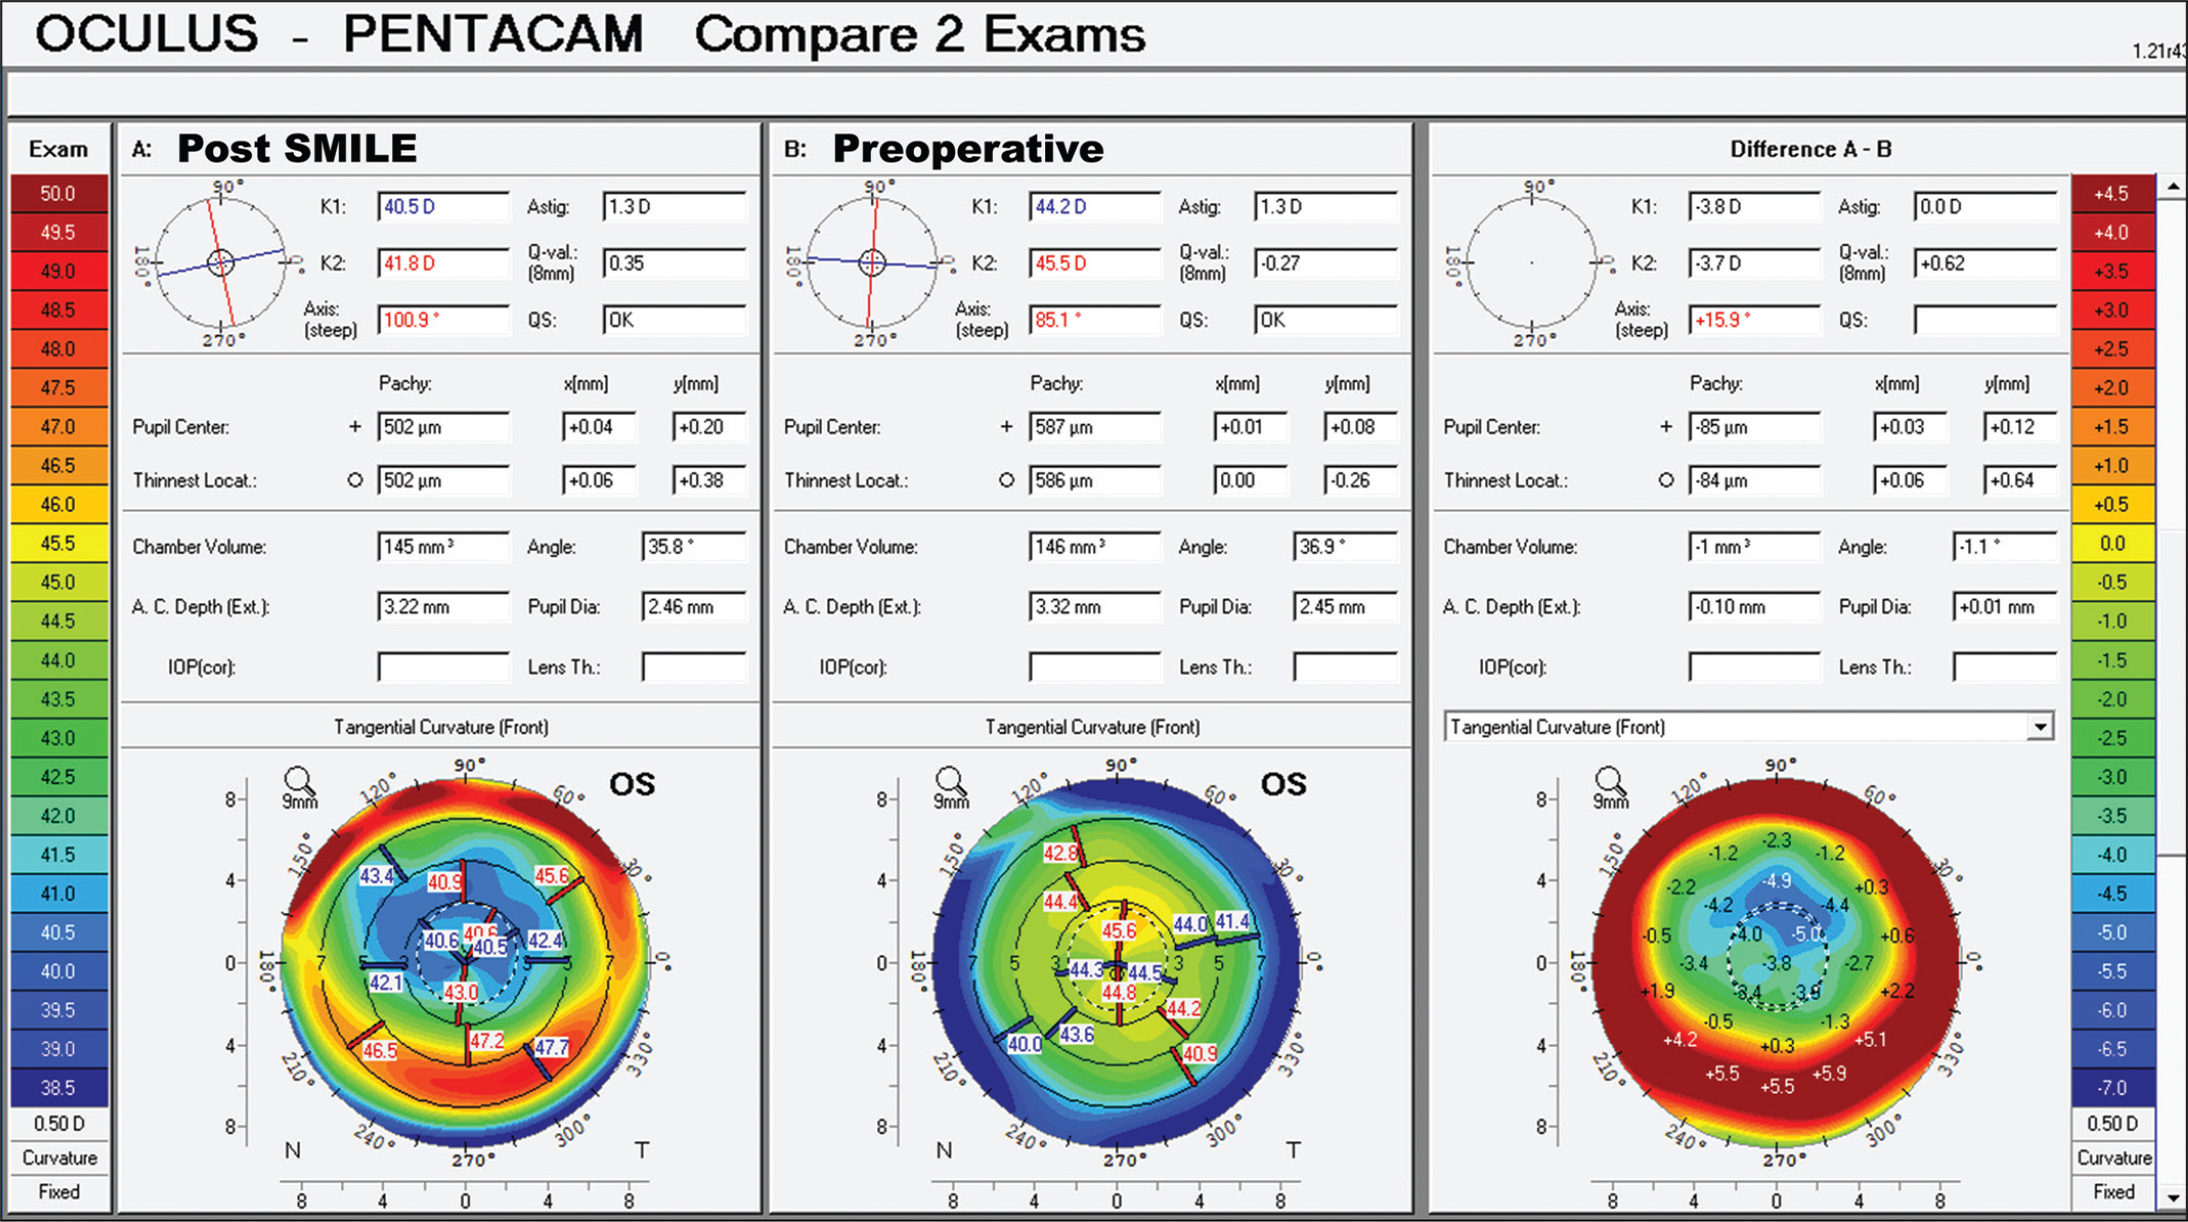 Scheimpflug difference map comparing anterior curvature before (middle image) and after (left image) small incision lenticule extraction (SMILE), with the difference in tangential curvature induced by lenticule extraction shown in the right image. This shows the maximal change in curvature occurred approximately 1.5 mm superior to the patient's optical zone. D = diopters